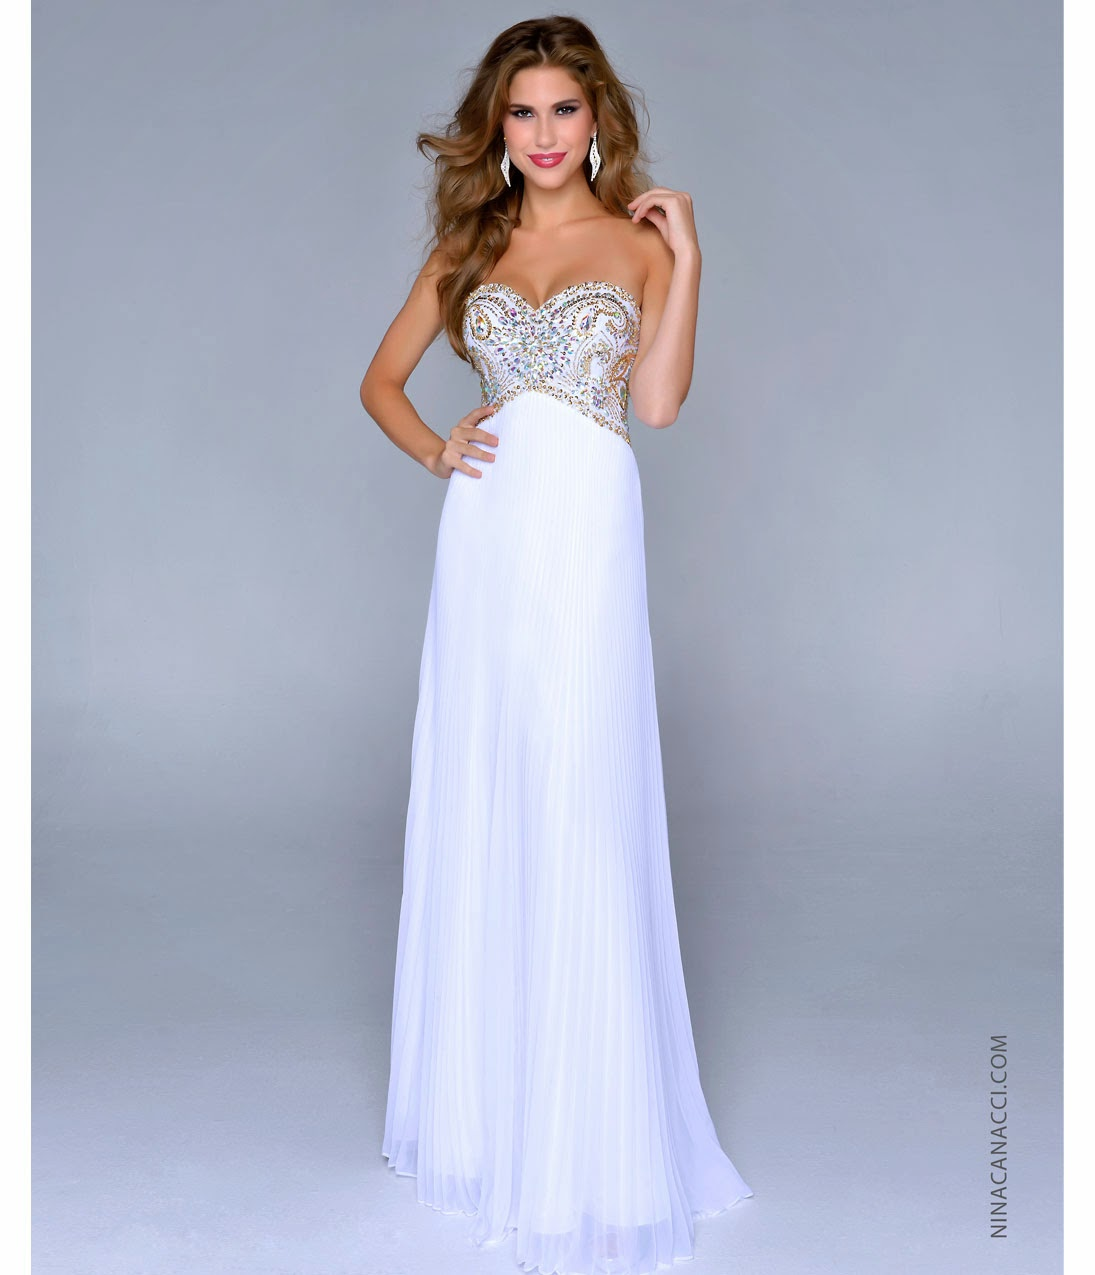 Prom Dresses $50 - Boutique Prom Dresses